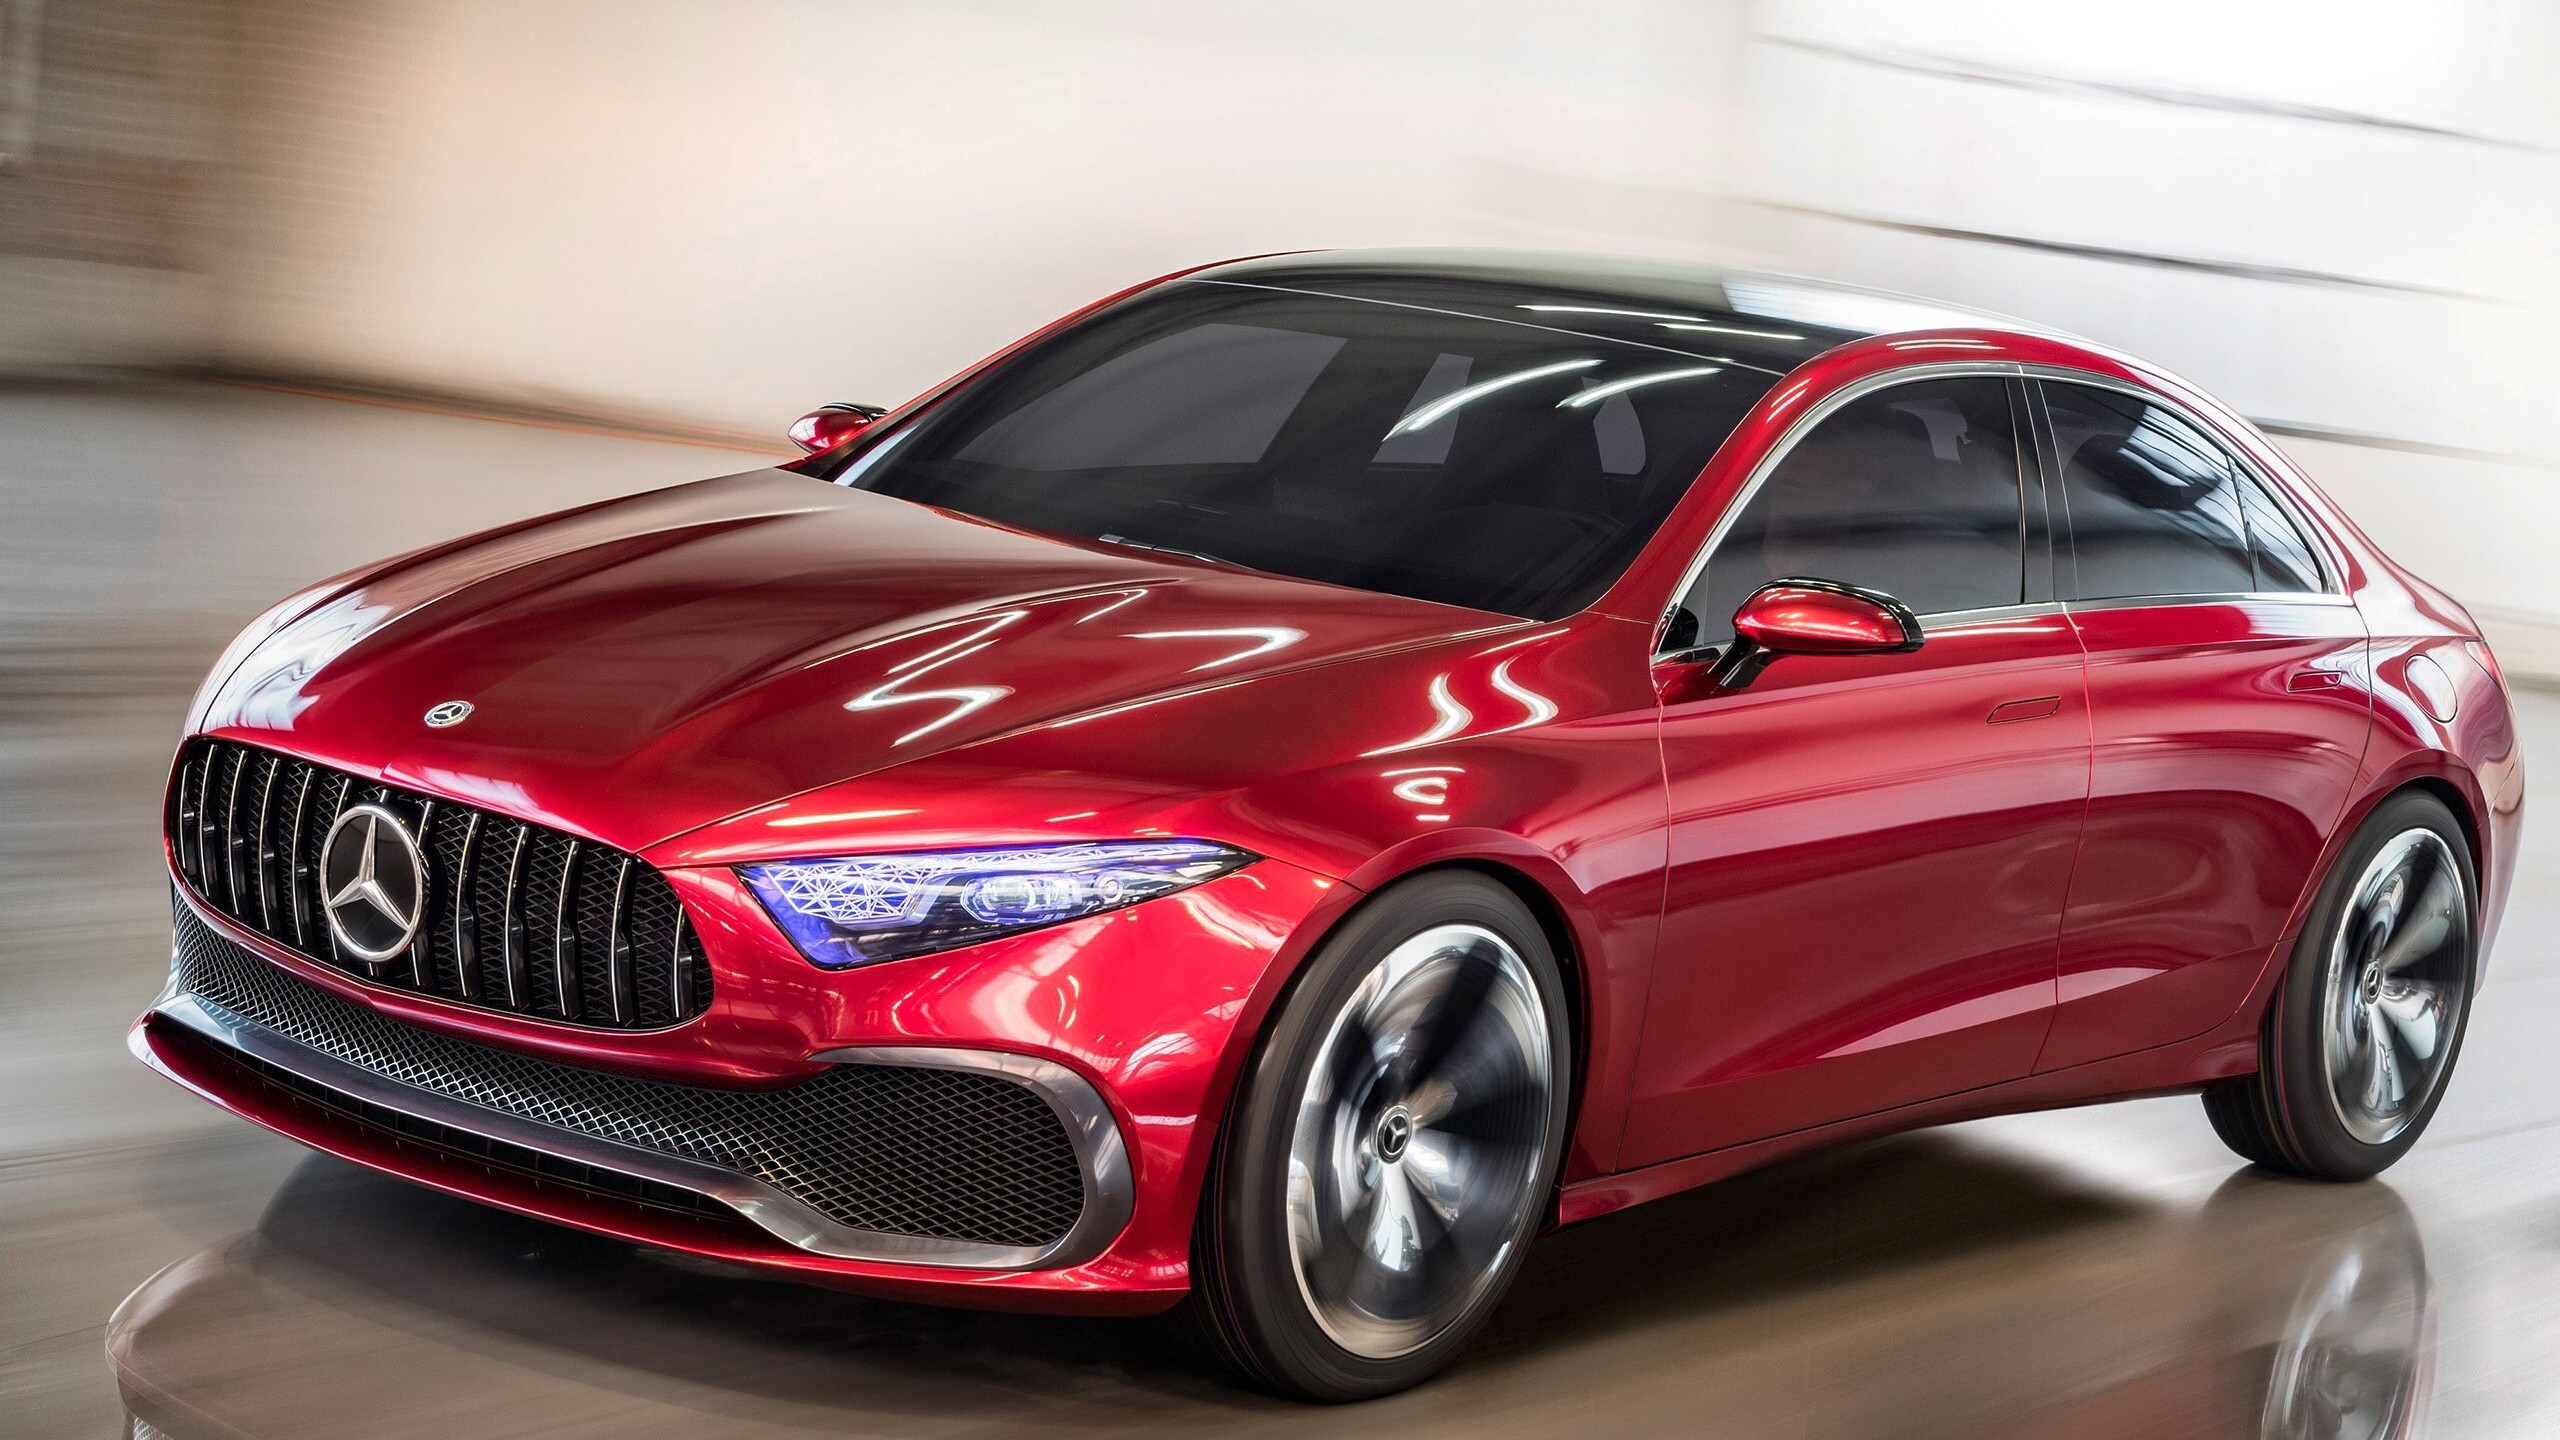 Mercedes Benz A Class Awesome Car   HD Wallpapers